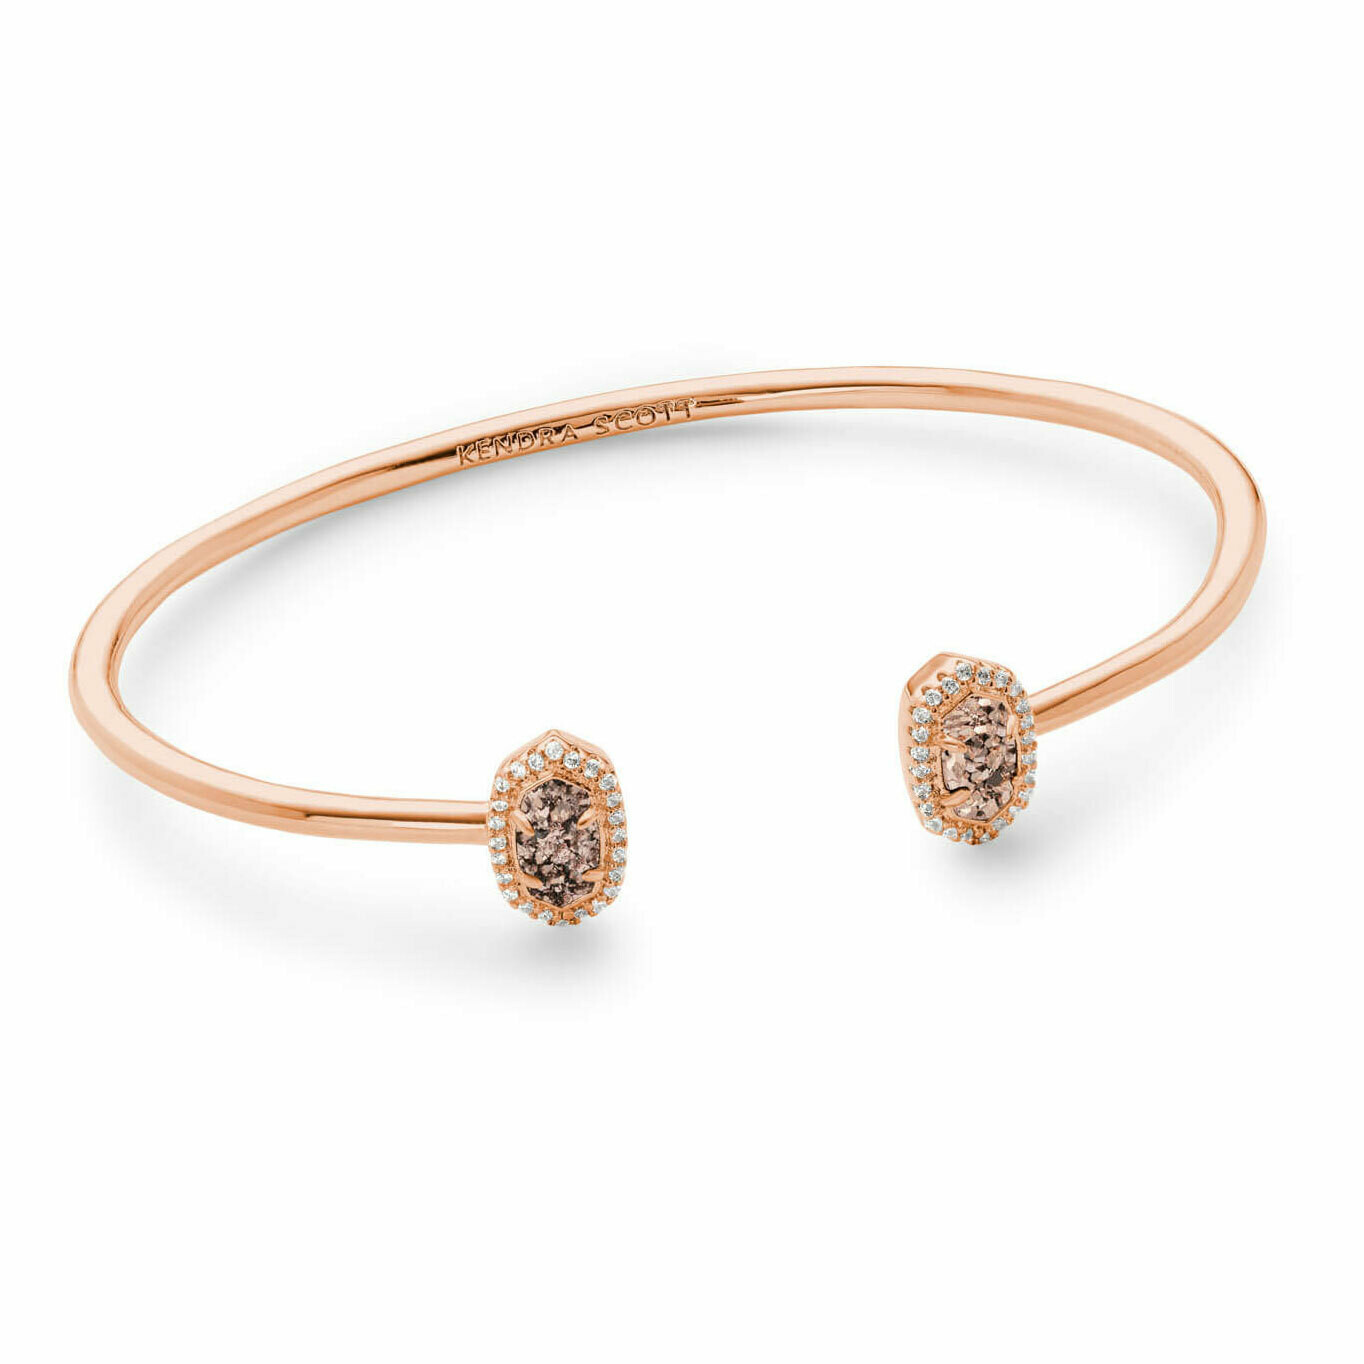 Kendra Scott Calla Rose Gold Cuff Bracelet in Rose Gold Drusy